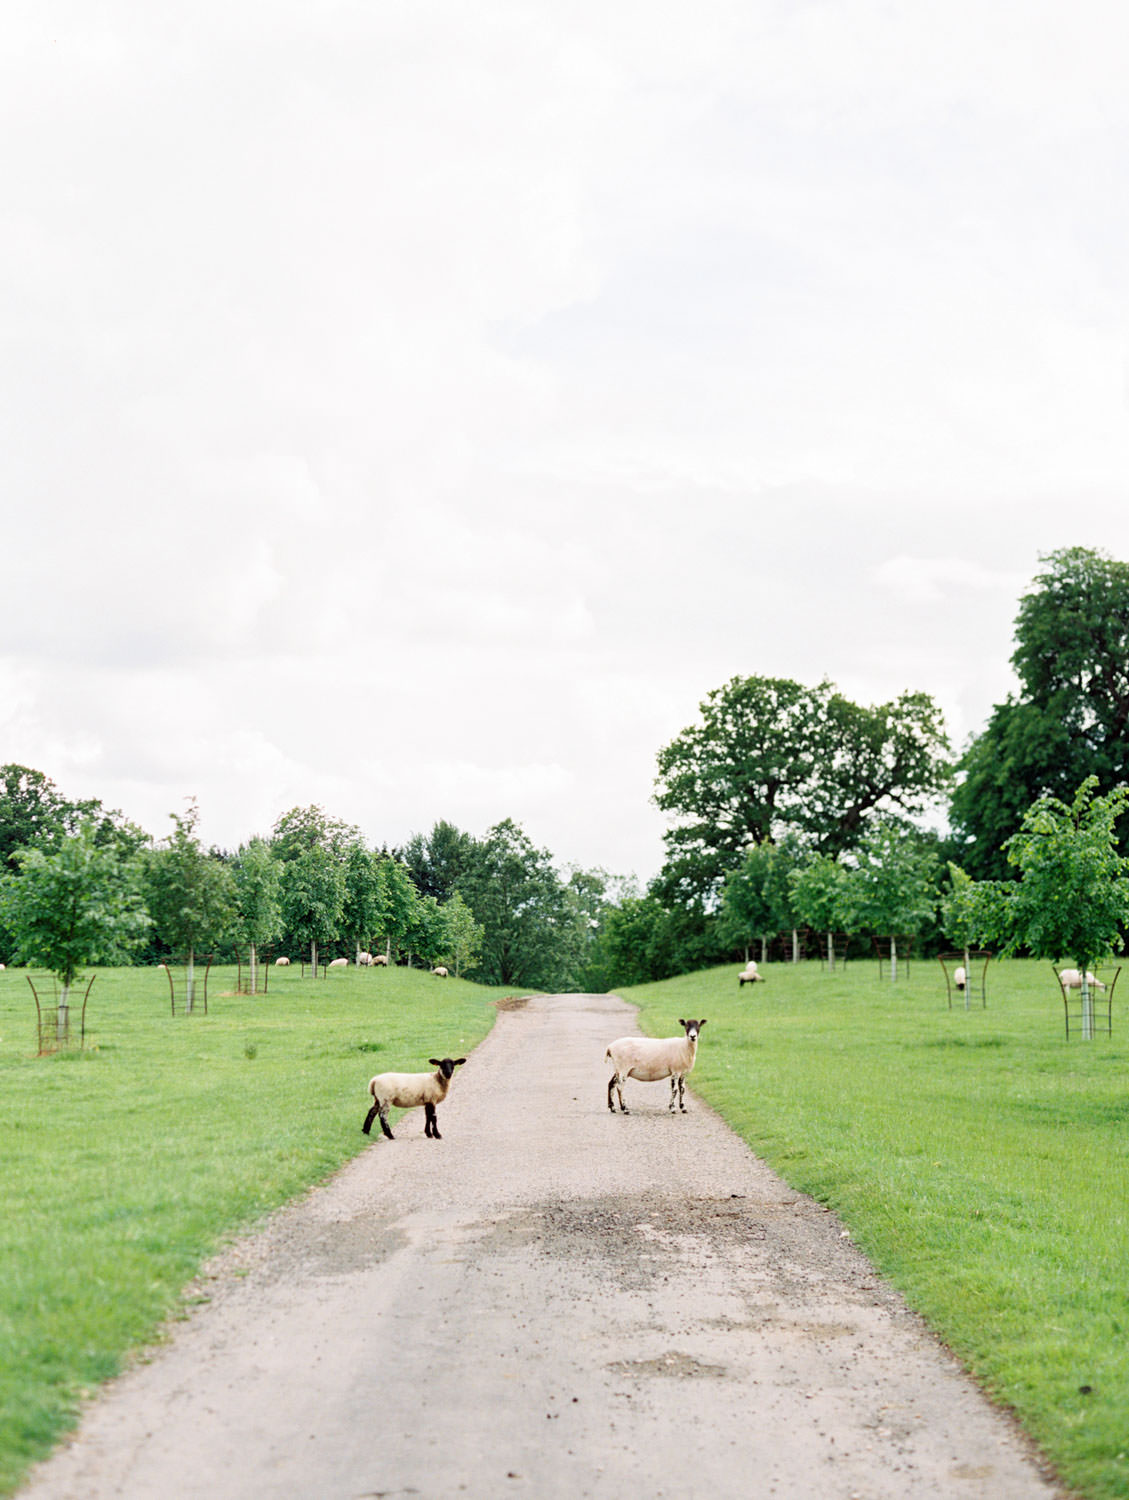 Sheep crossing a road. Flutter Magazine Retreat in the Cotswolds at Norton Hall in Mickleton, England. Photo by Cavin Elizabeth Photography on film